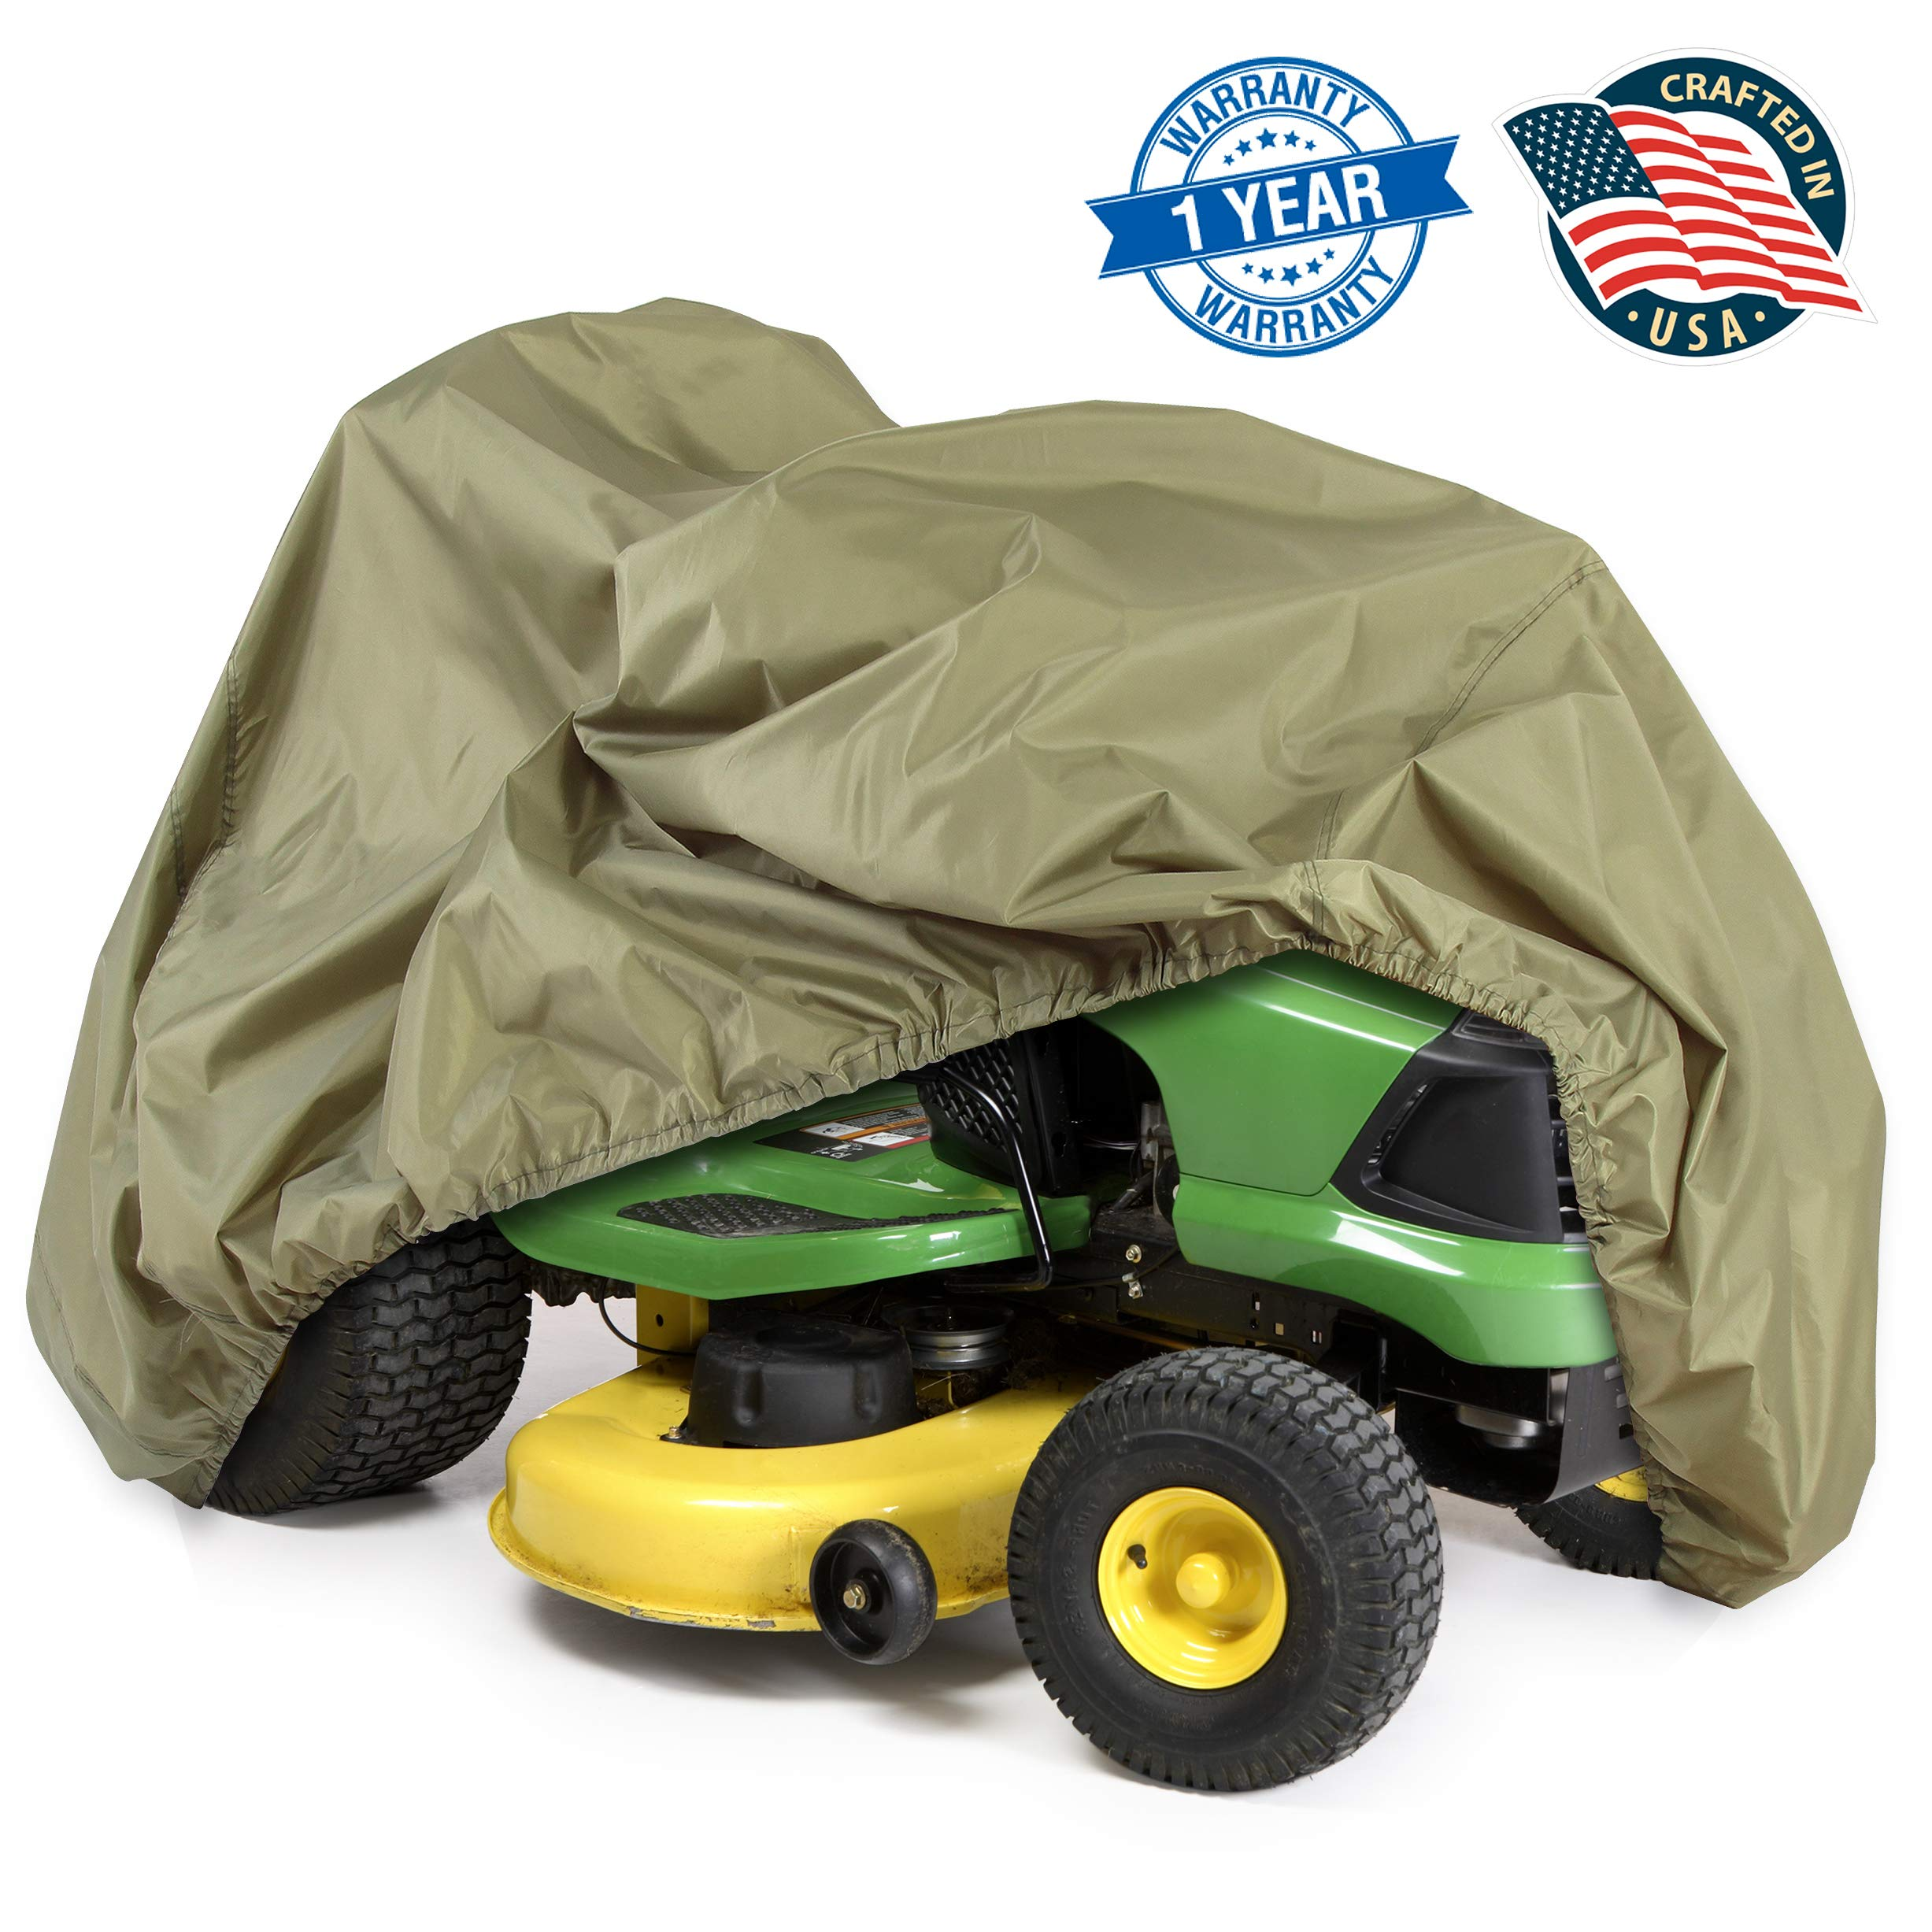 Universal Lawn Tractor Mower Cover - Armor Shield Waterproof Marine Grade Canvas, Weather Resistant with Mildew and Dust Protection - Indoor and Outdoor Protective Storage - Pyle PCVLTR11 (Green) by Pyle